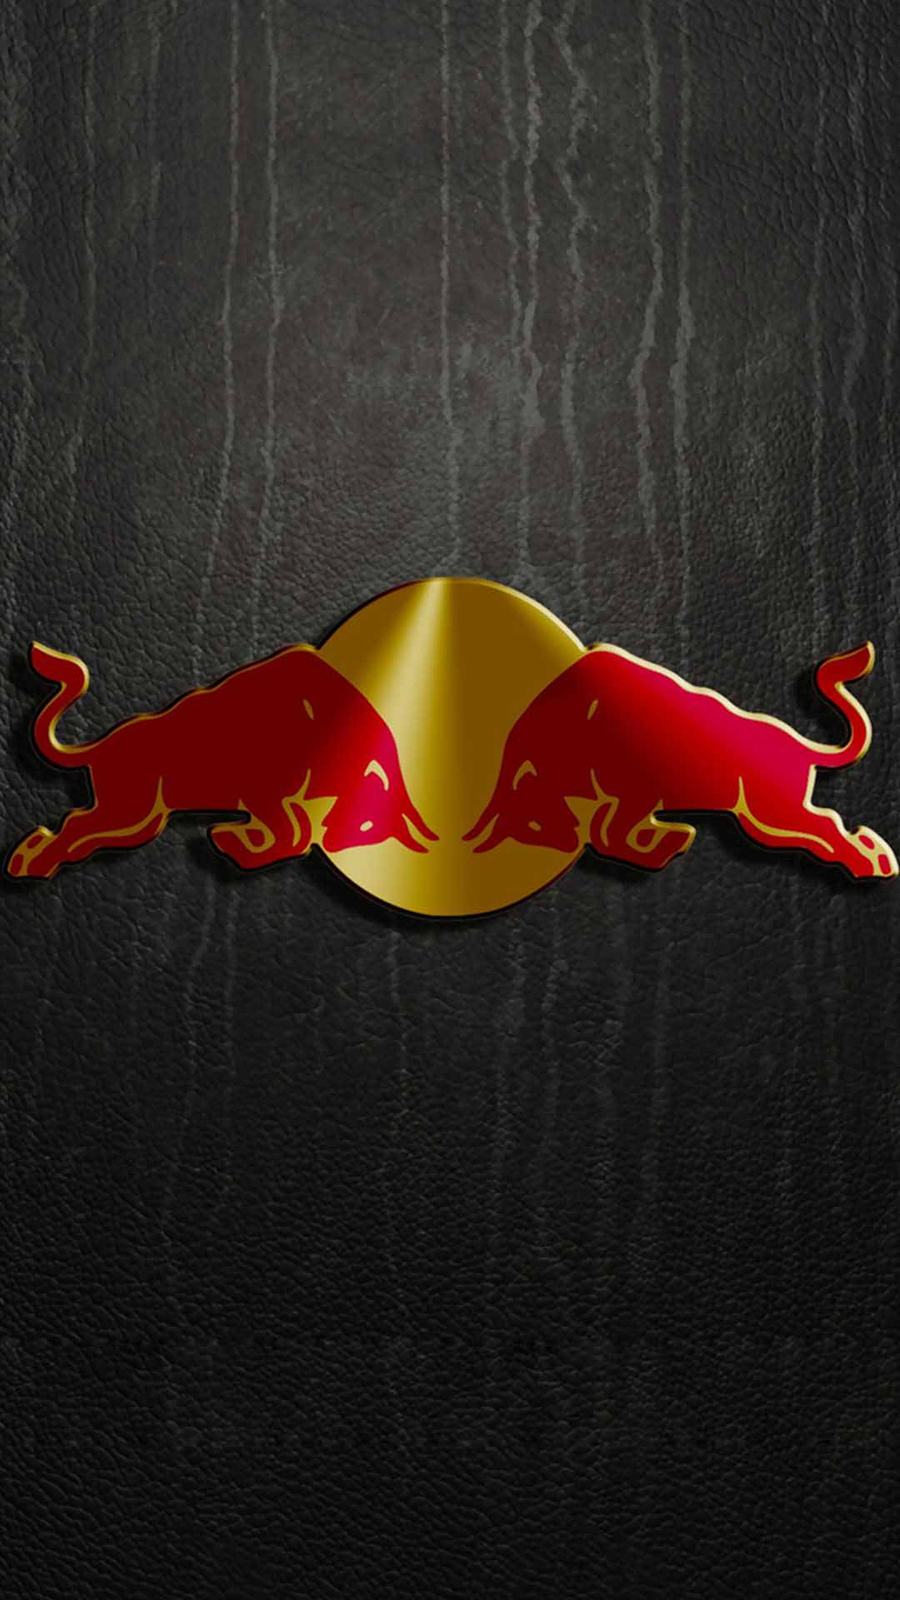 Red Bull Wallpapers Free Download For Your Device (2)